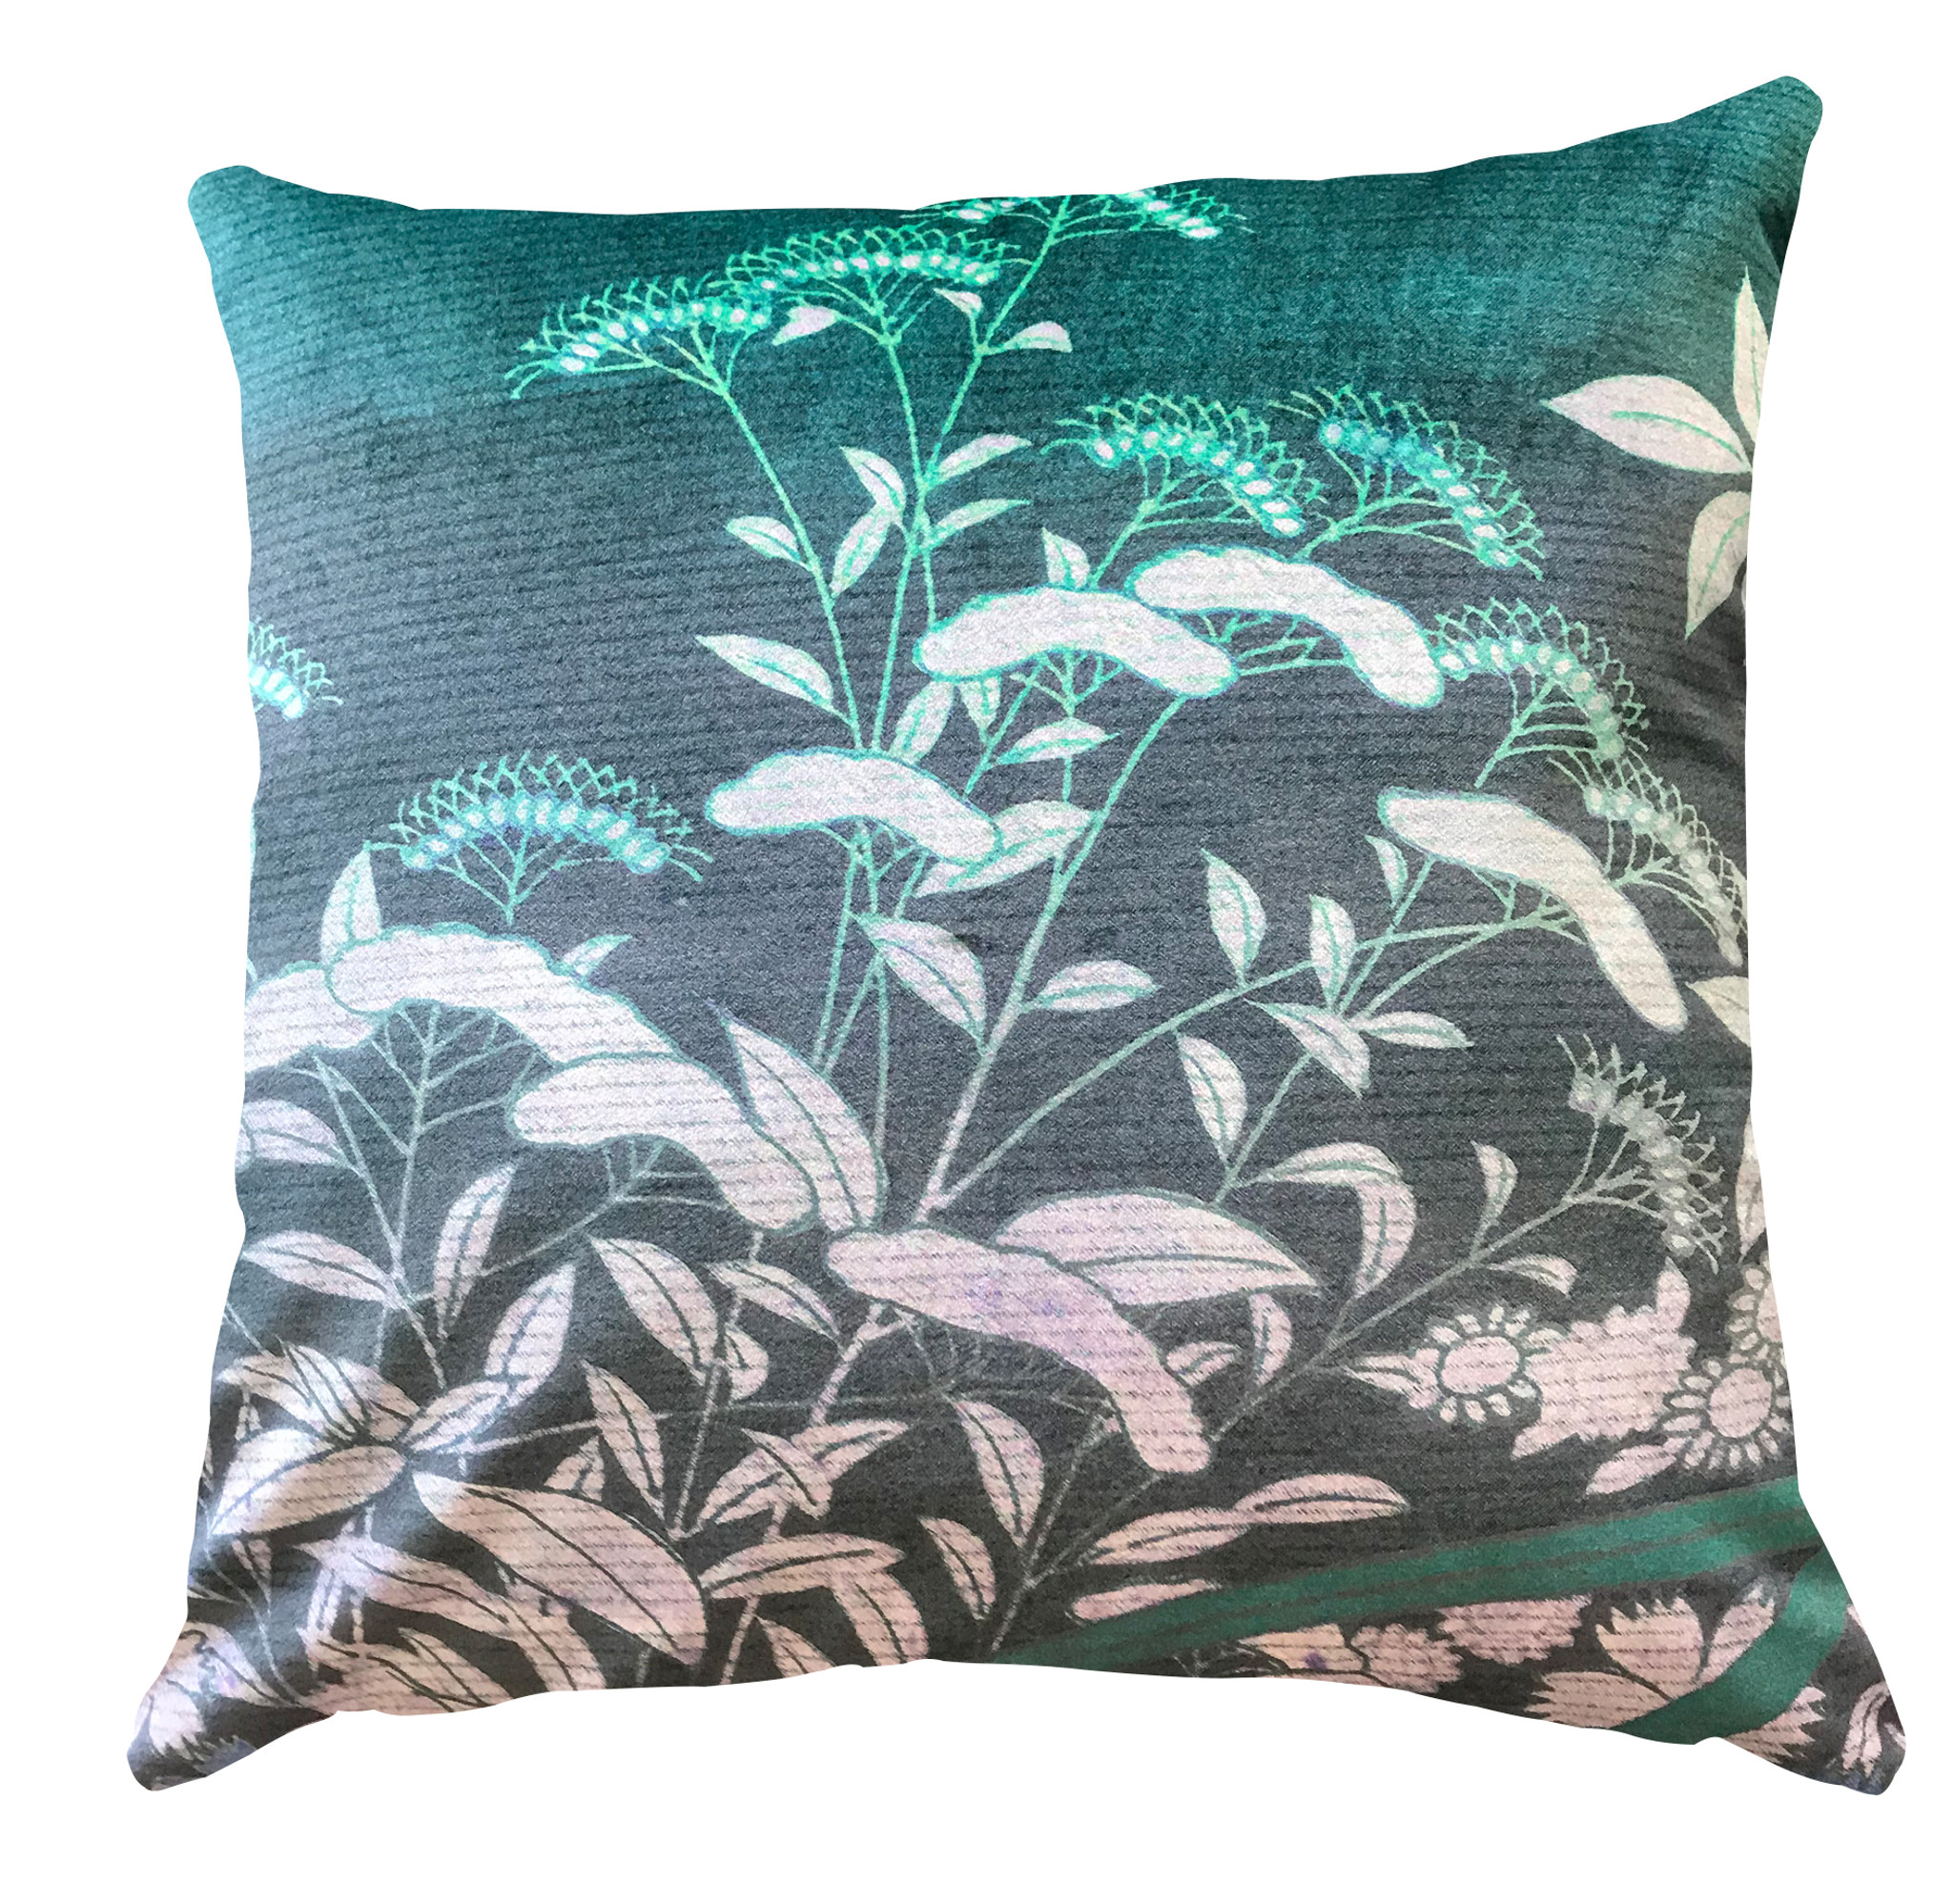 Cushion Cover - Ryokan Dreaming - Suggested Itinerary Mauve